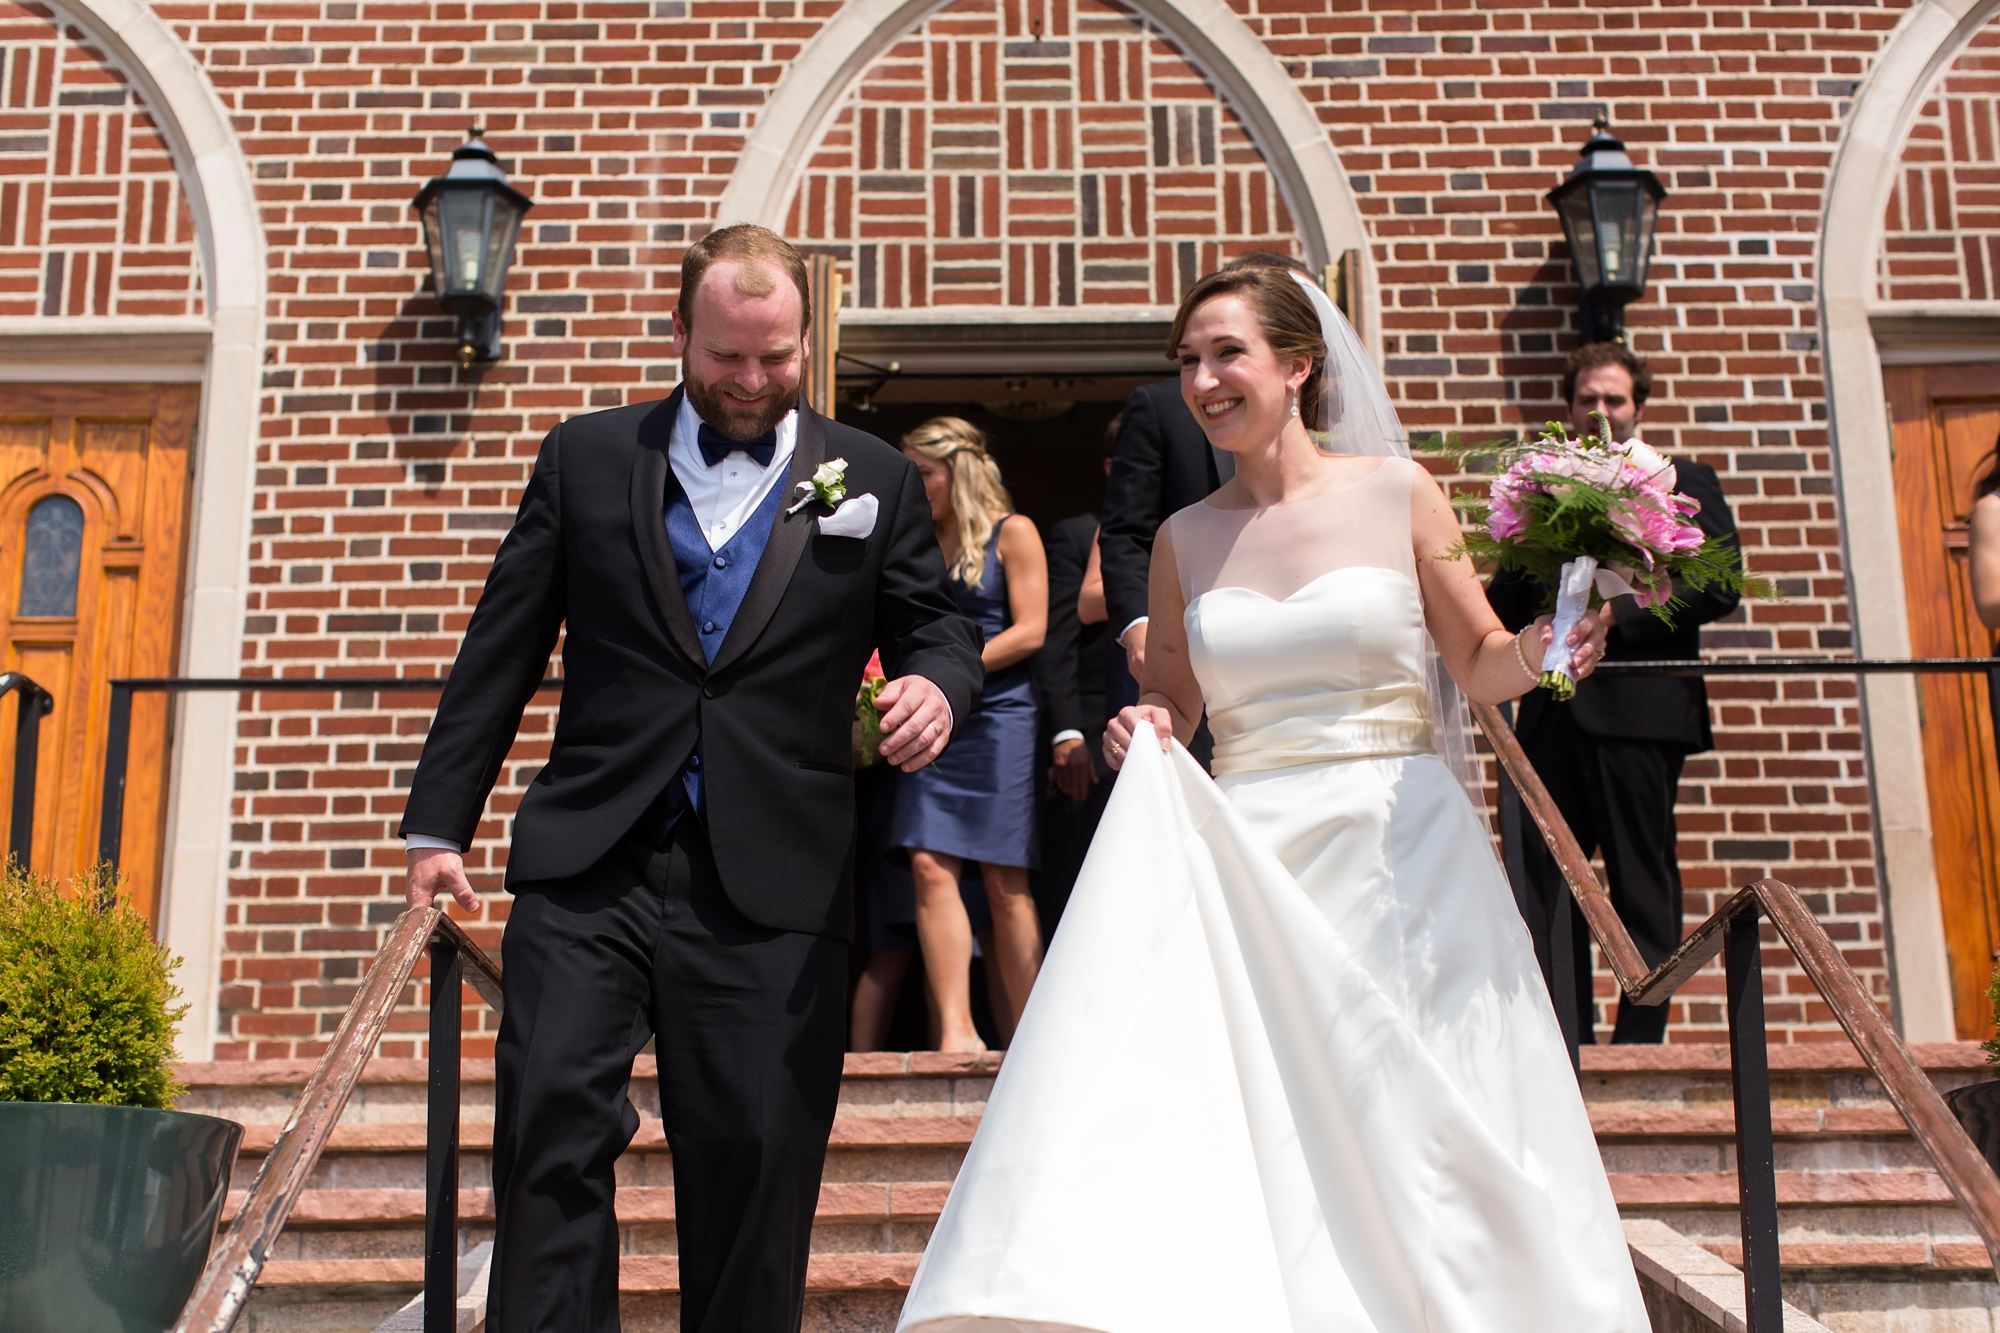 252Allegra_Anderson_CT_Wedding_Photographer_Stamford_Sterling_Farms_Golf_Club_2016